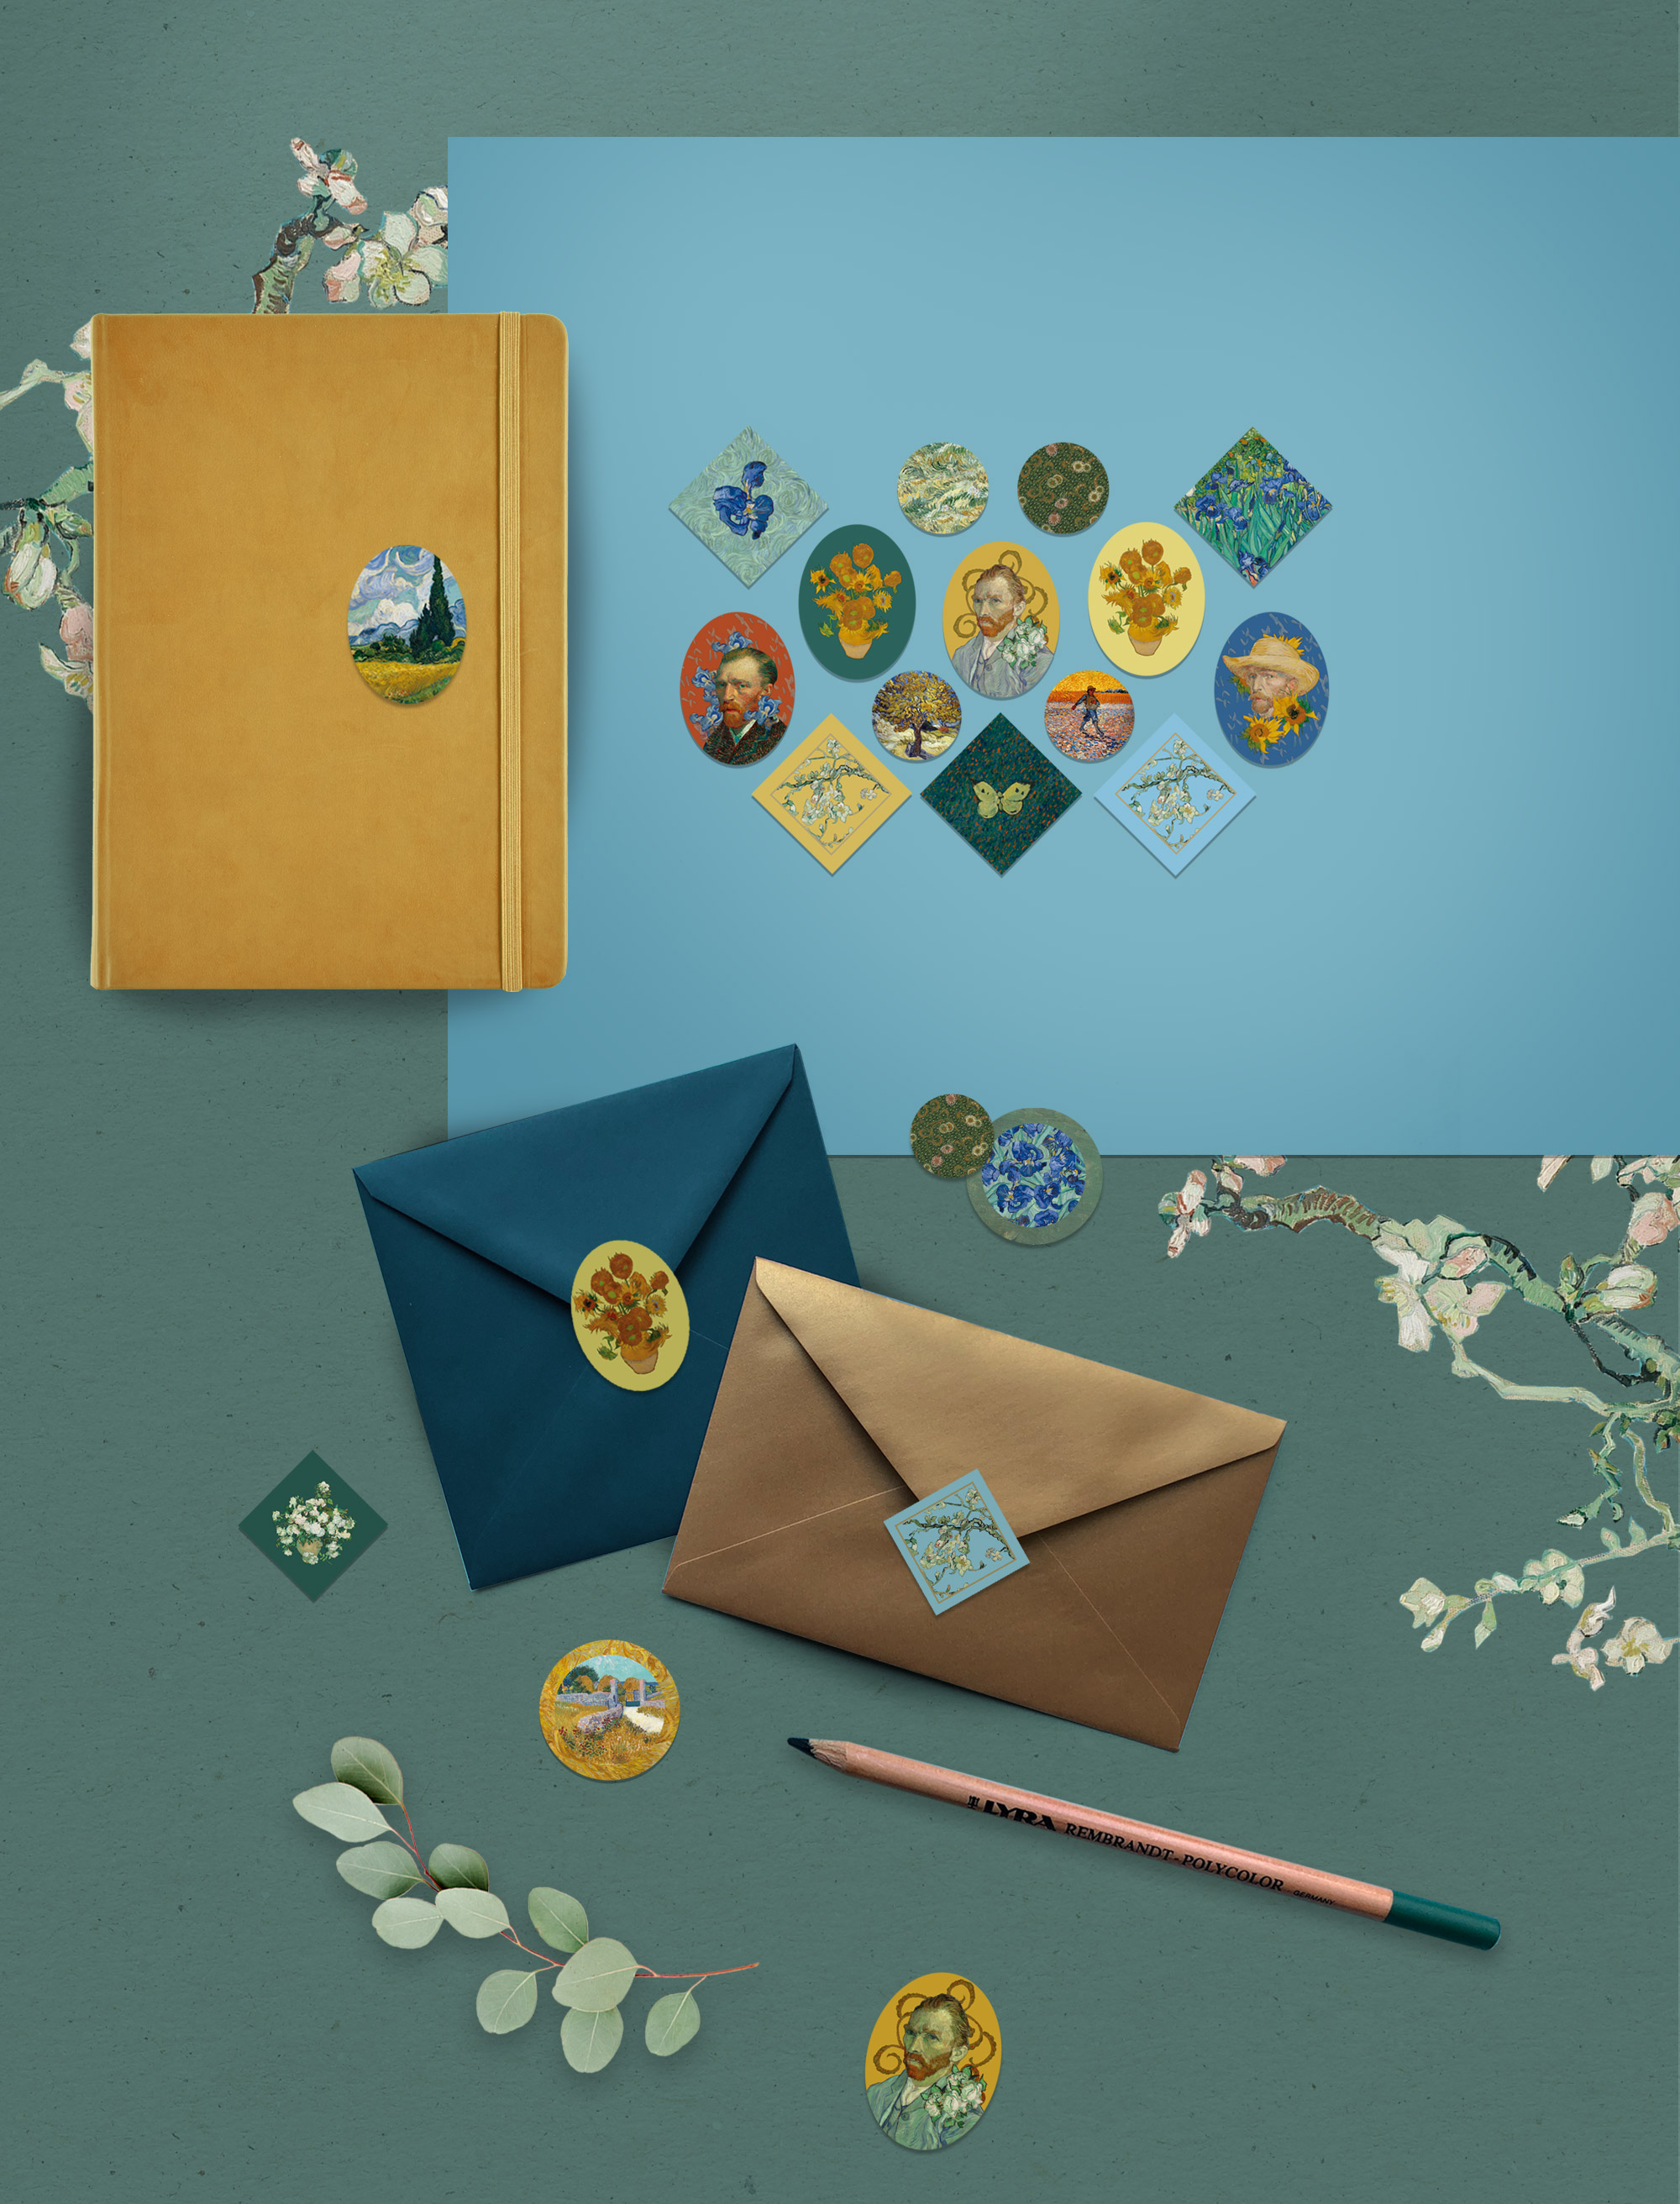 trc_van-gogh_stationery-stickers